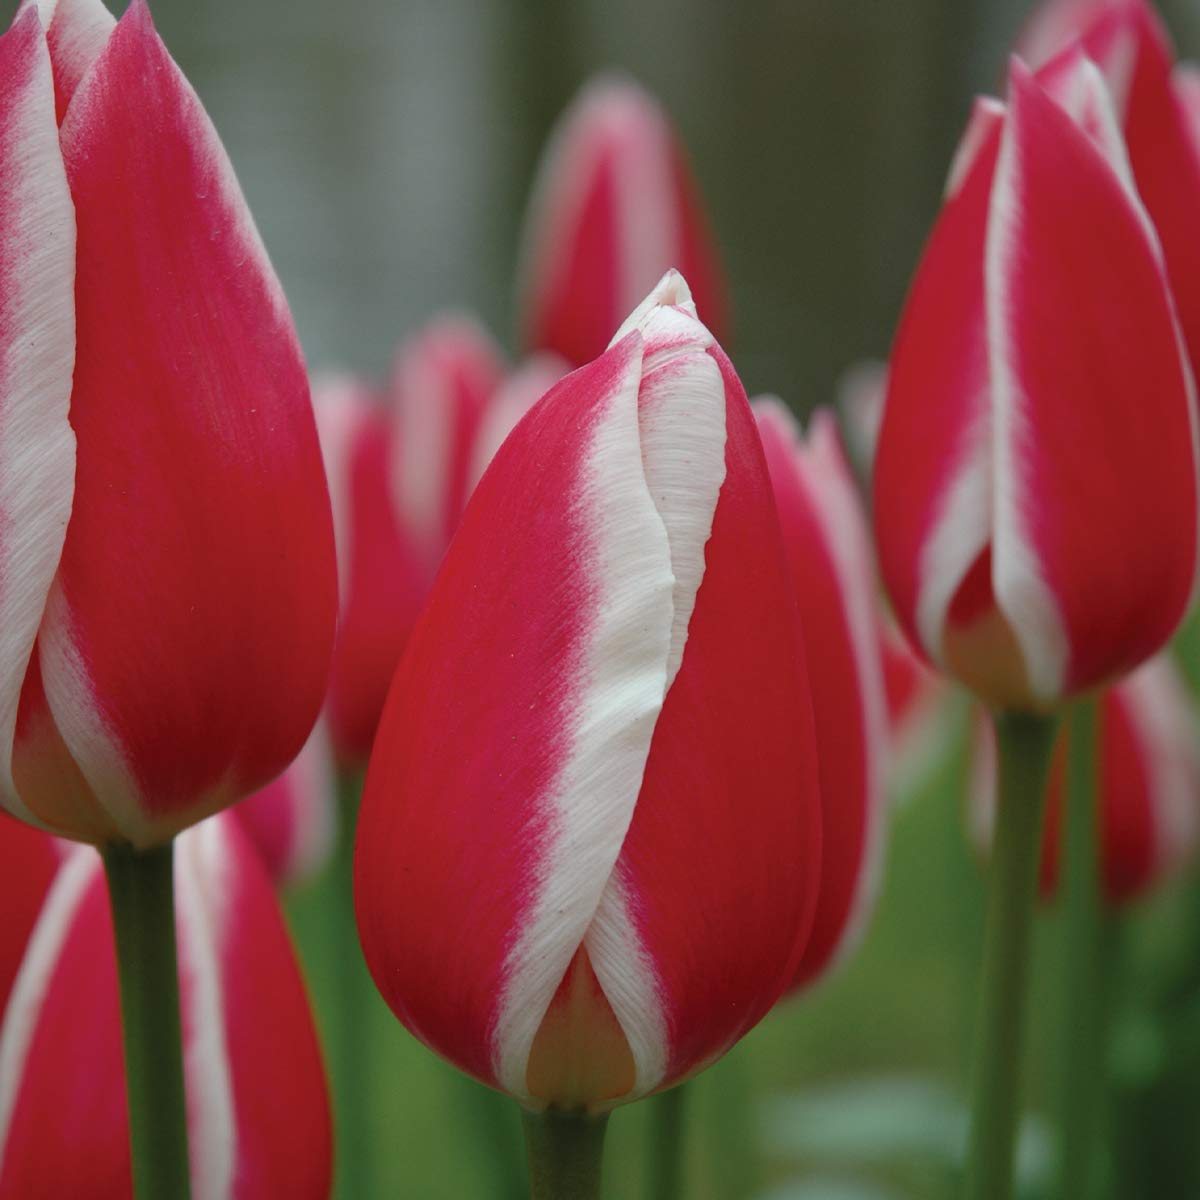 Burpee Candy Apple Delight Darwin Hybrid Tulip | 10 Large Flowering Fall Bulbs for Planting, Red & White by Burpee